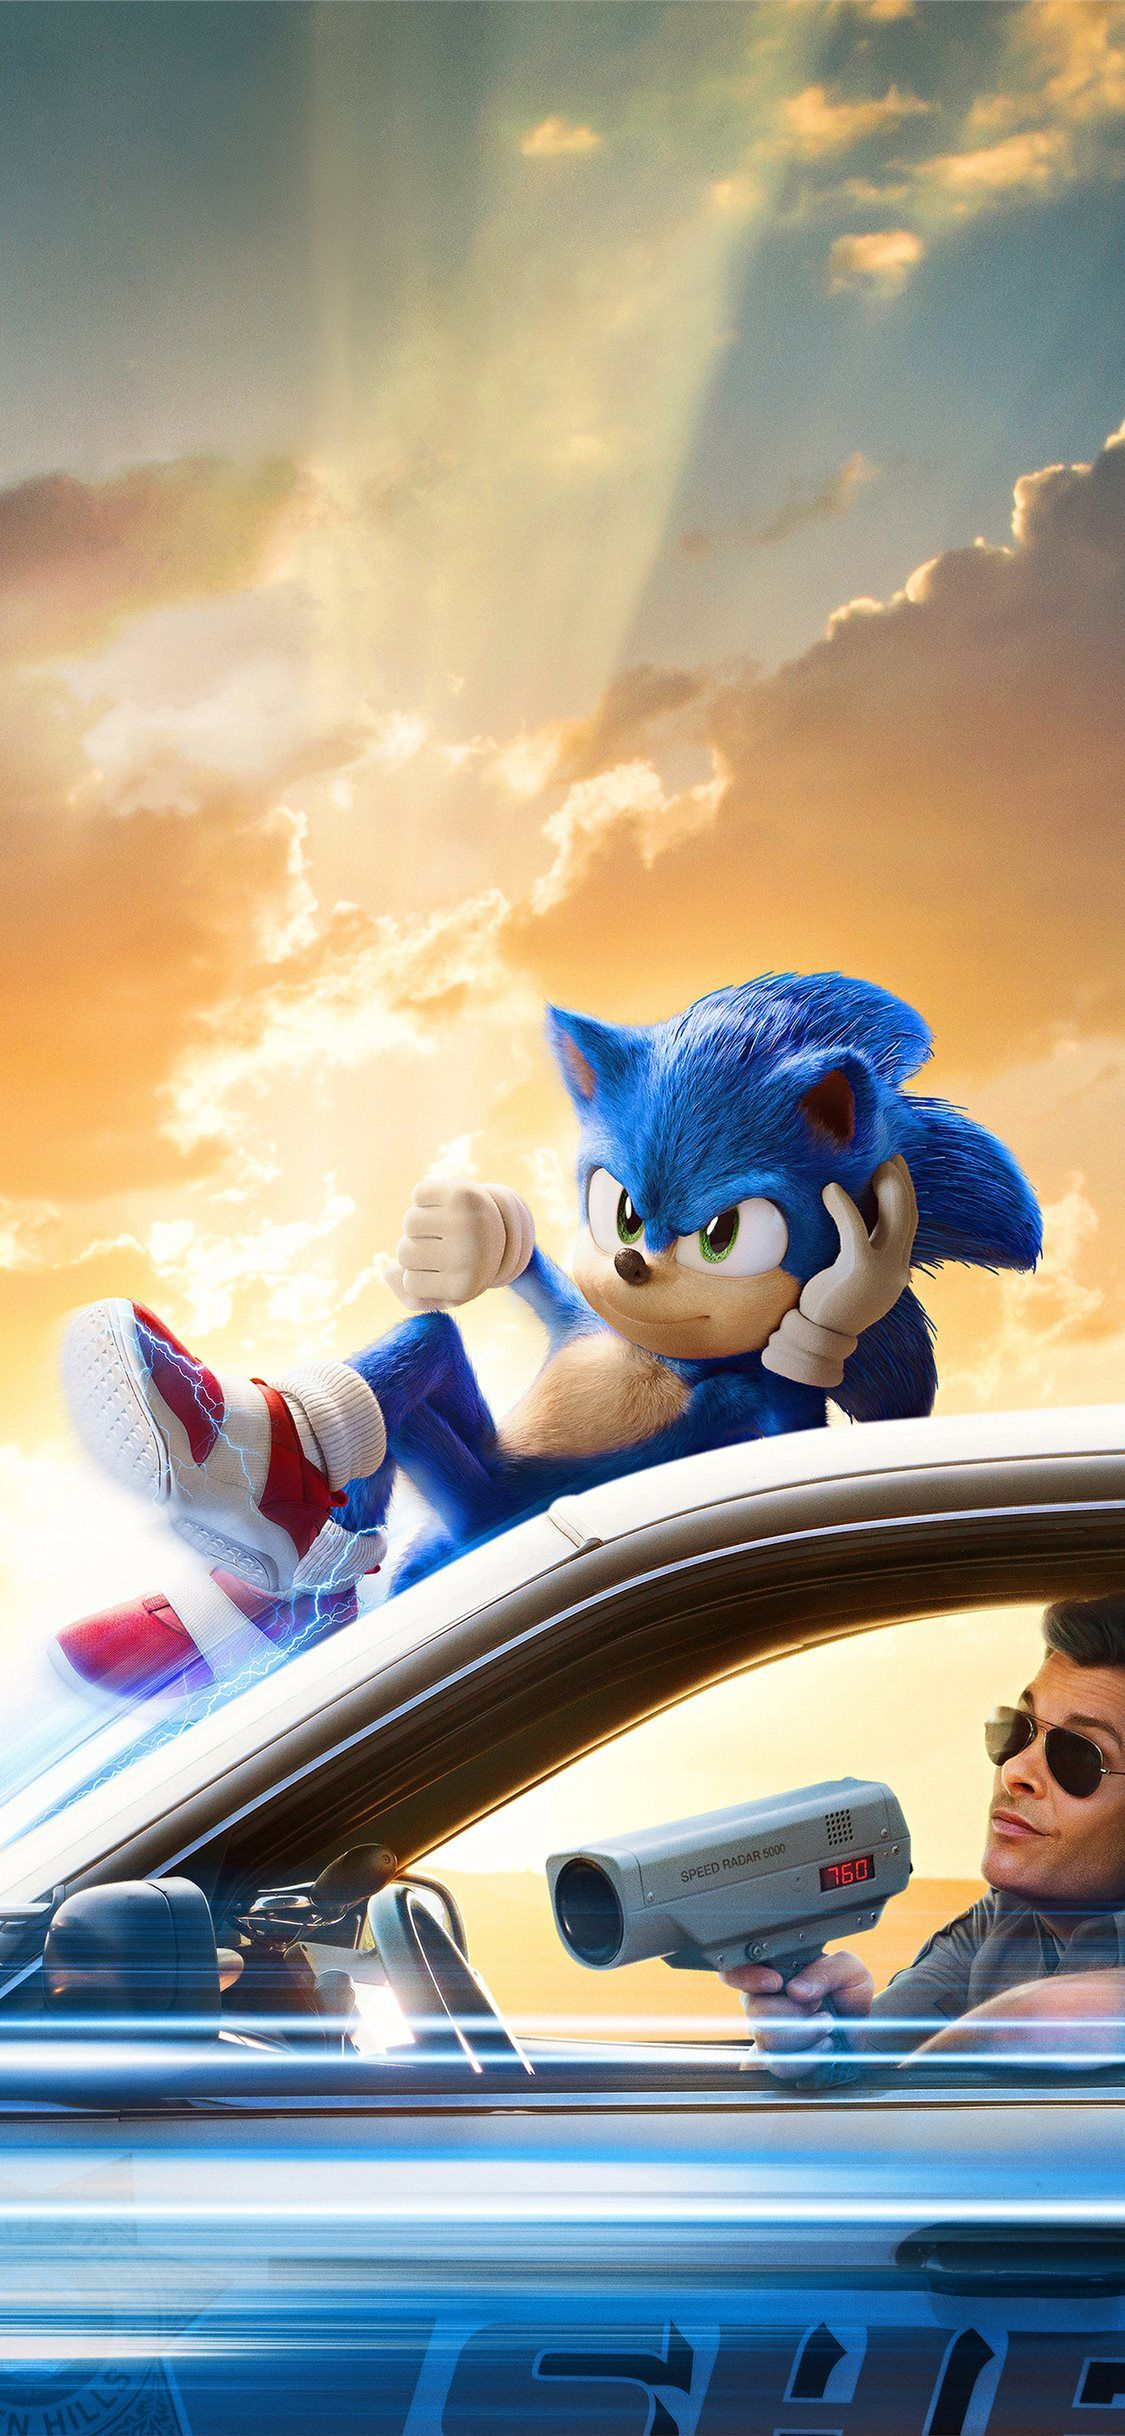 2020 sonic the hedgehog 4k iPhone X Wallpapers in 2020